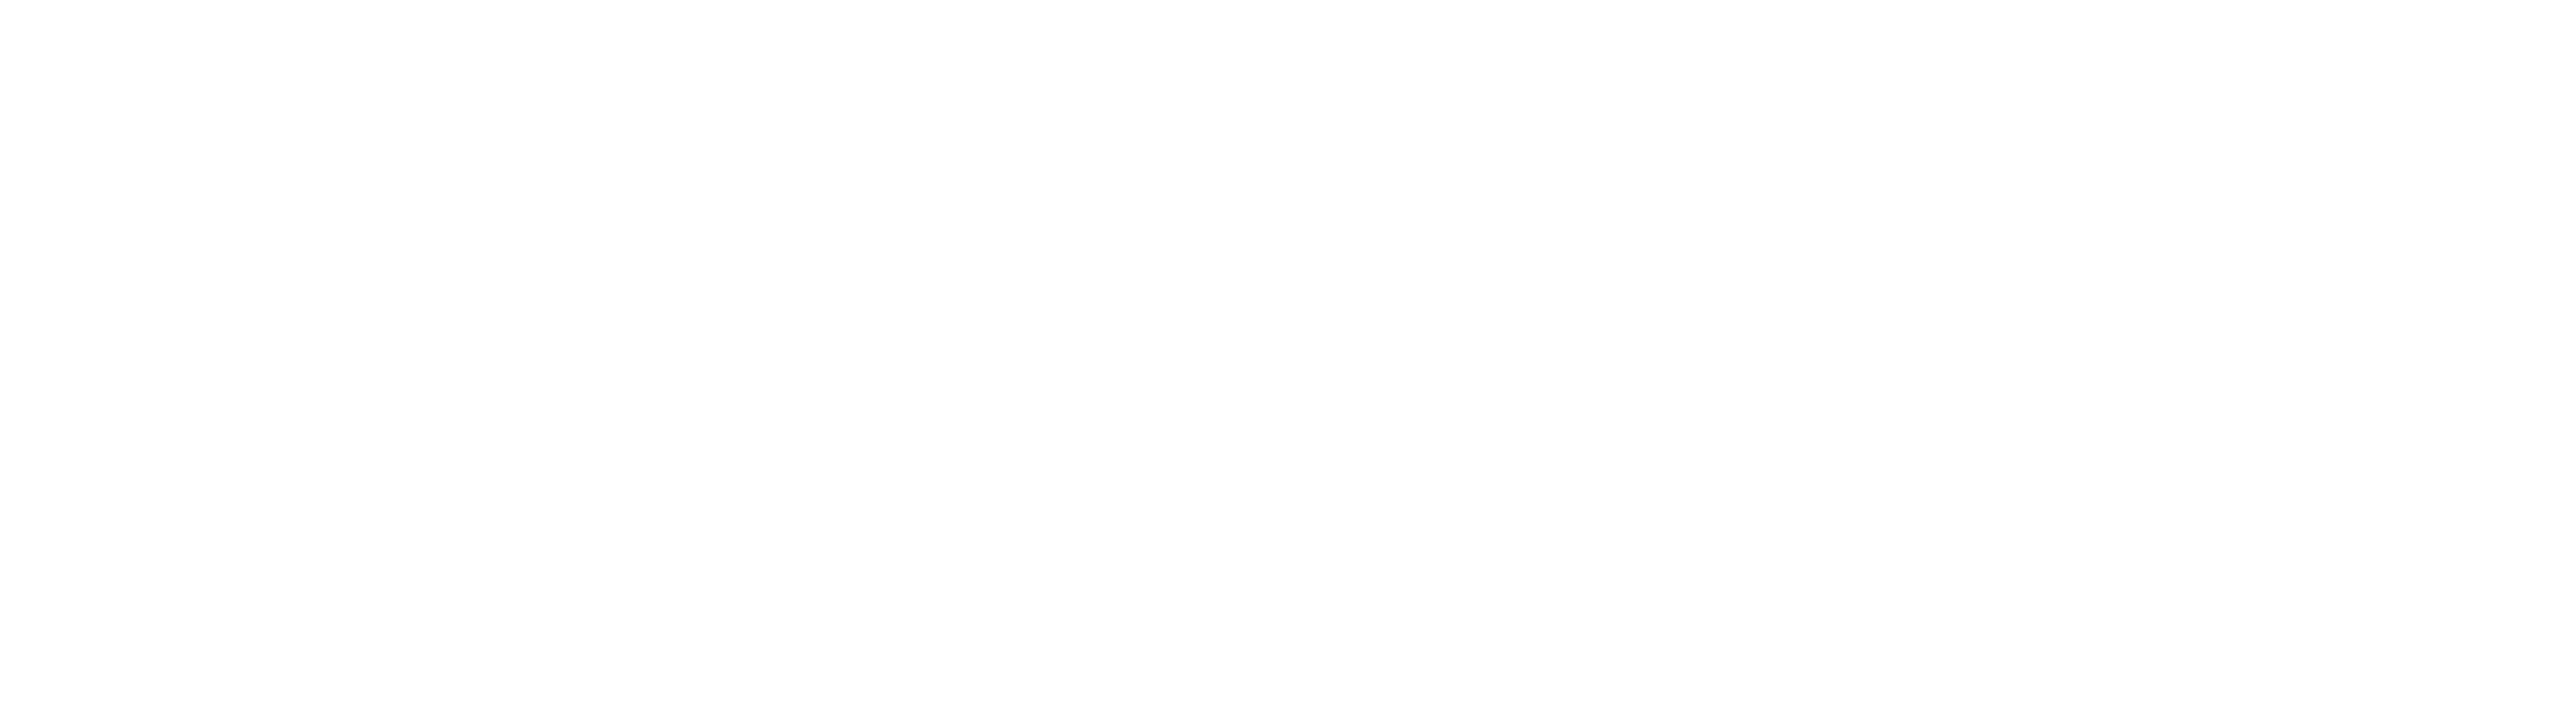 WPWealth: Your Trusted Advisors